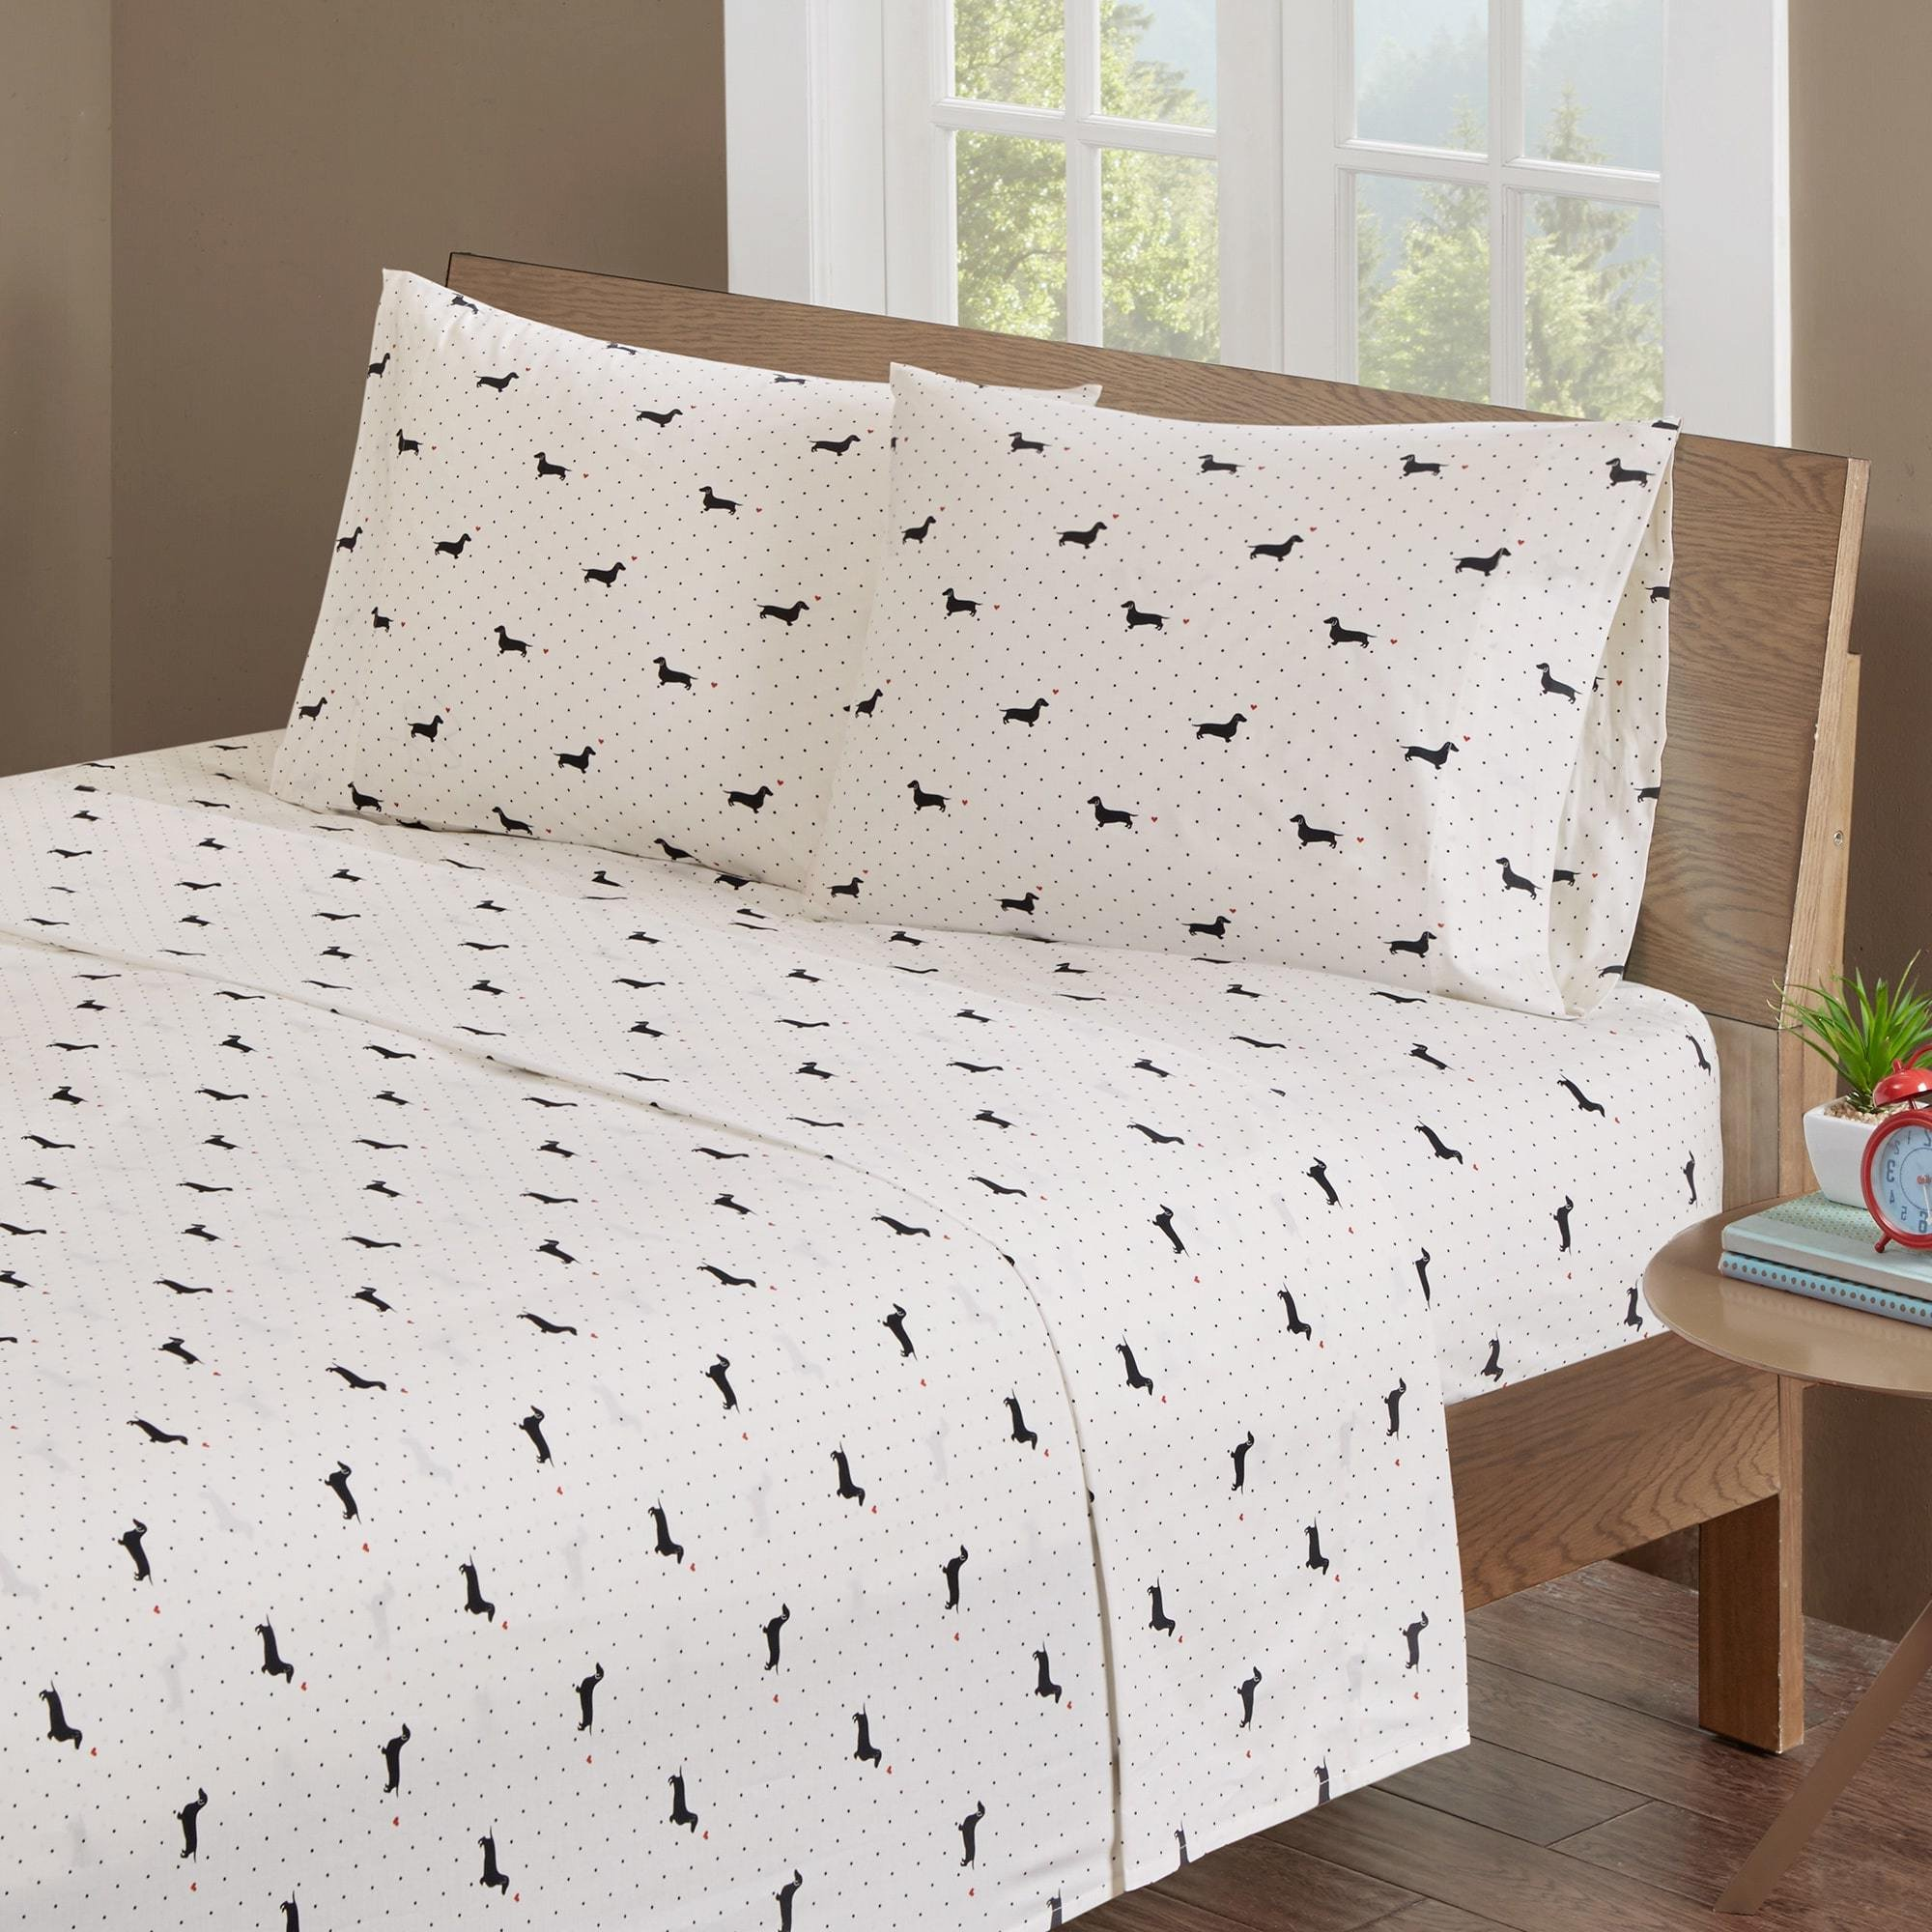 4 Piece Girls Doggy Dachshund Bold Black Sheet King Set, Ivory White Color Allover Animal Pattern Jungle Zoo Kids Bedding For Bedroom, Modern Unique Casual Teen Safari African Themed, Cotton Puppy Pet